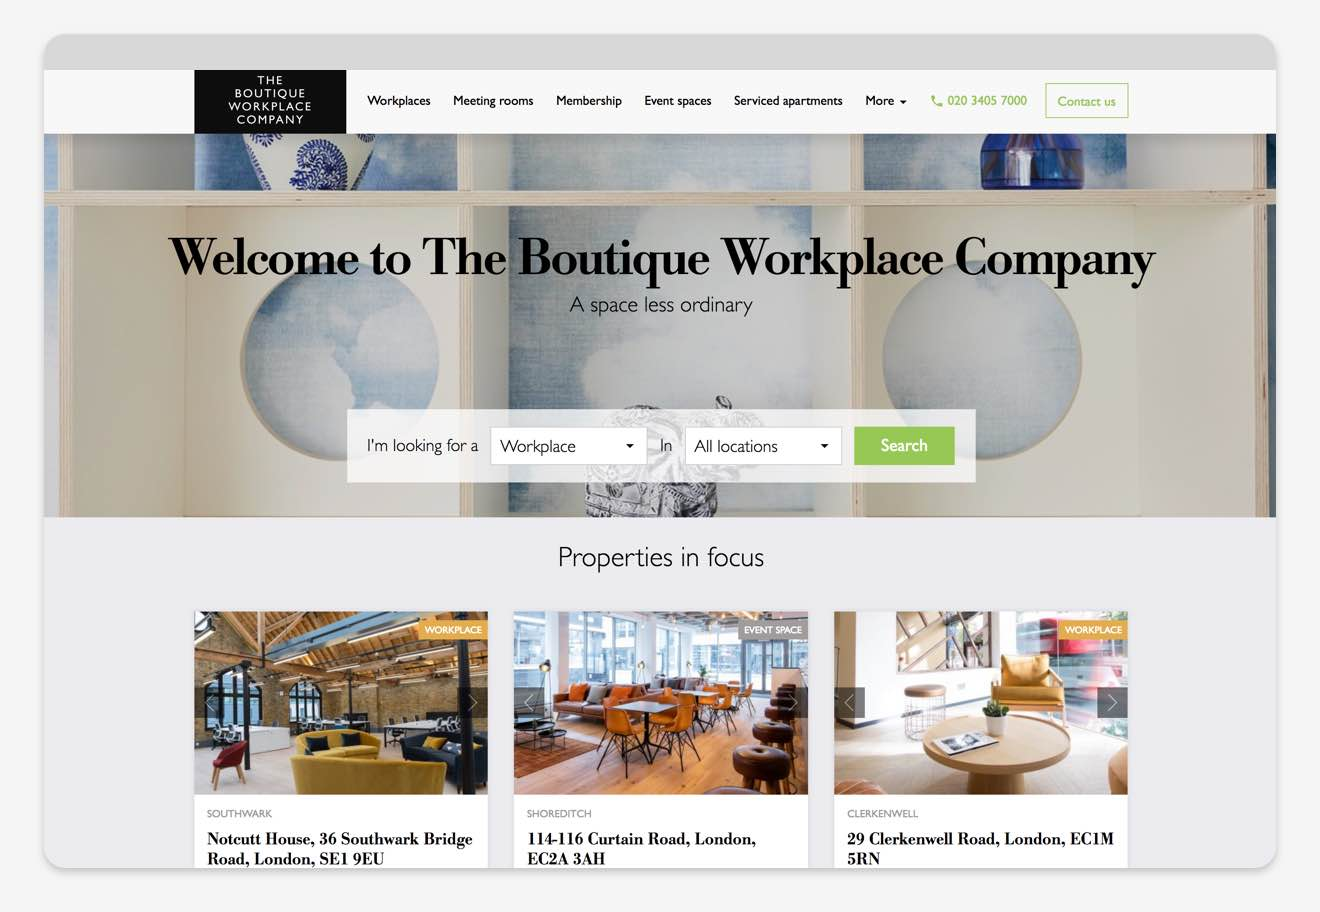 ContentCal Boost Boutique Workplace 5687